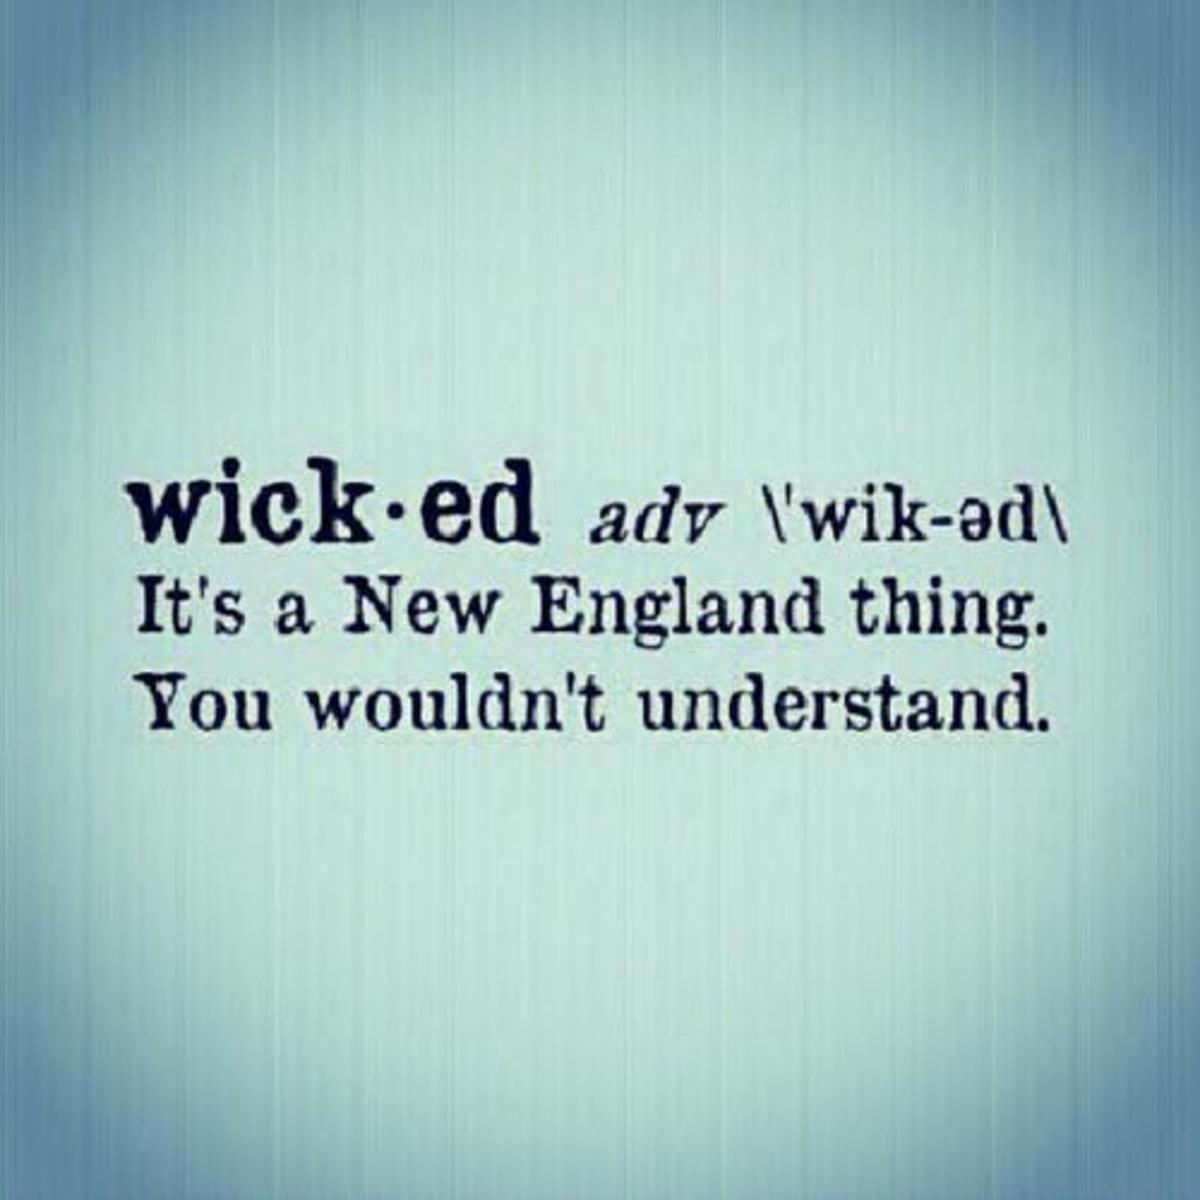 wicked slang origin why does new england say wicked and what does